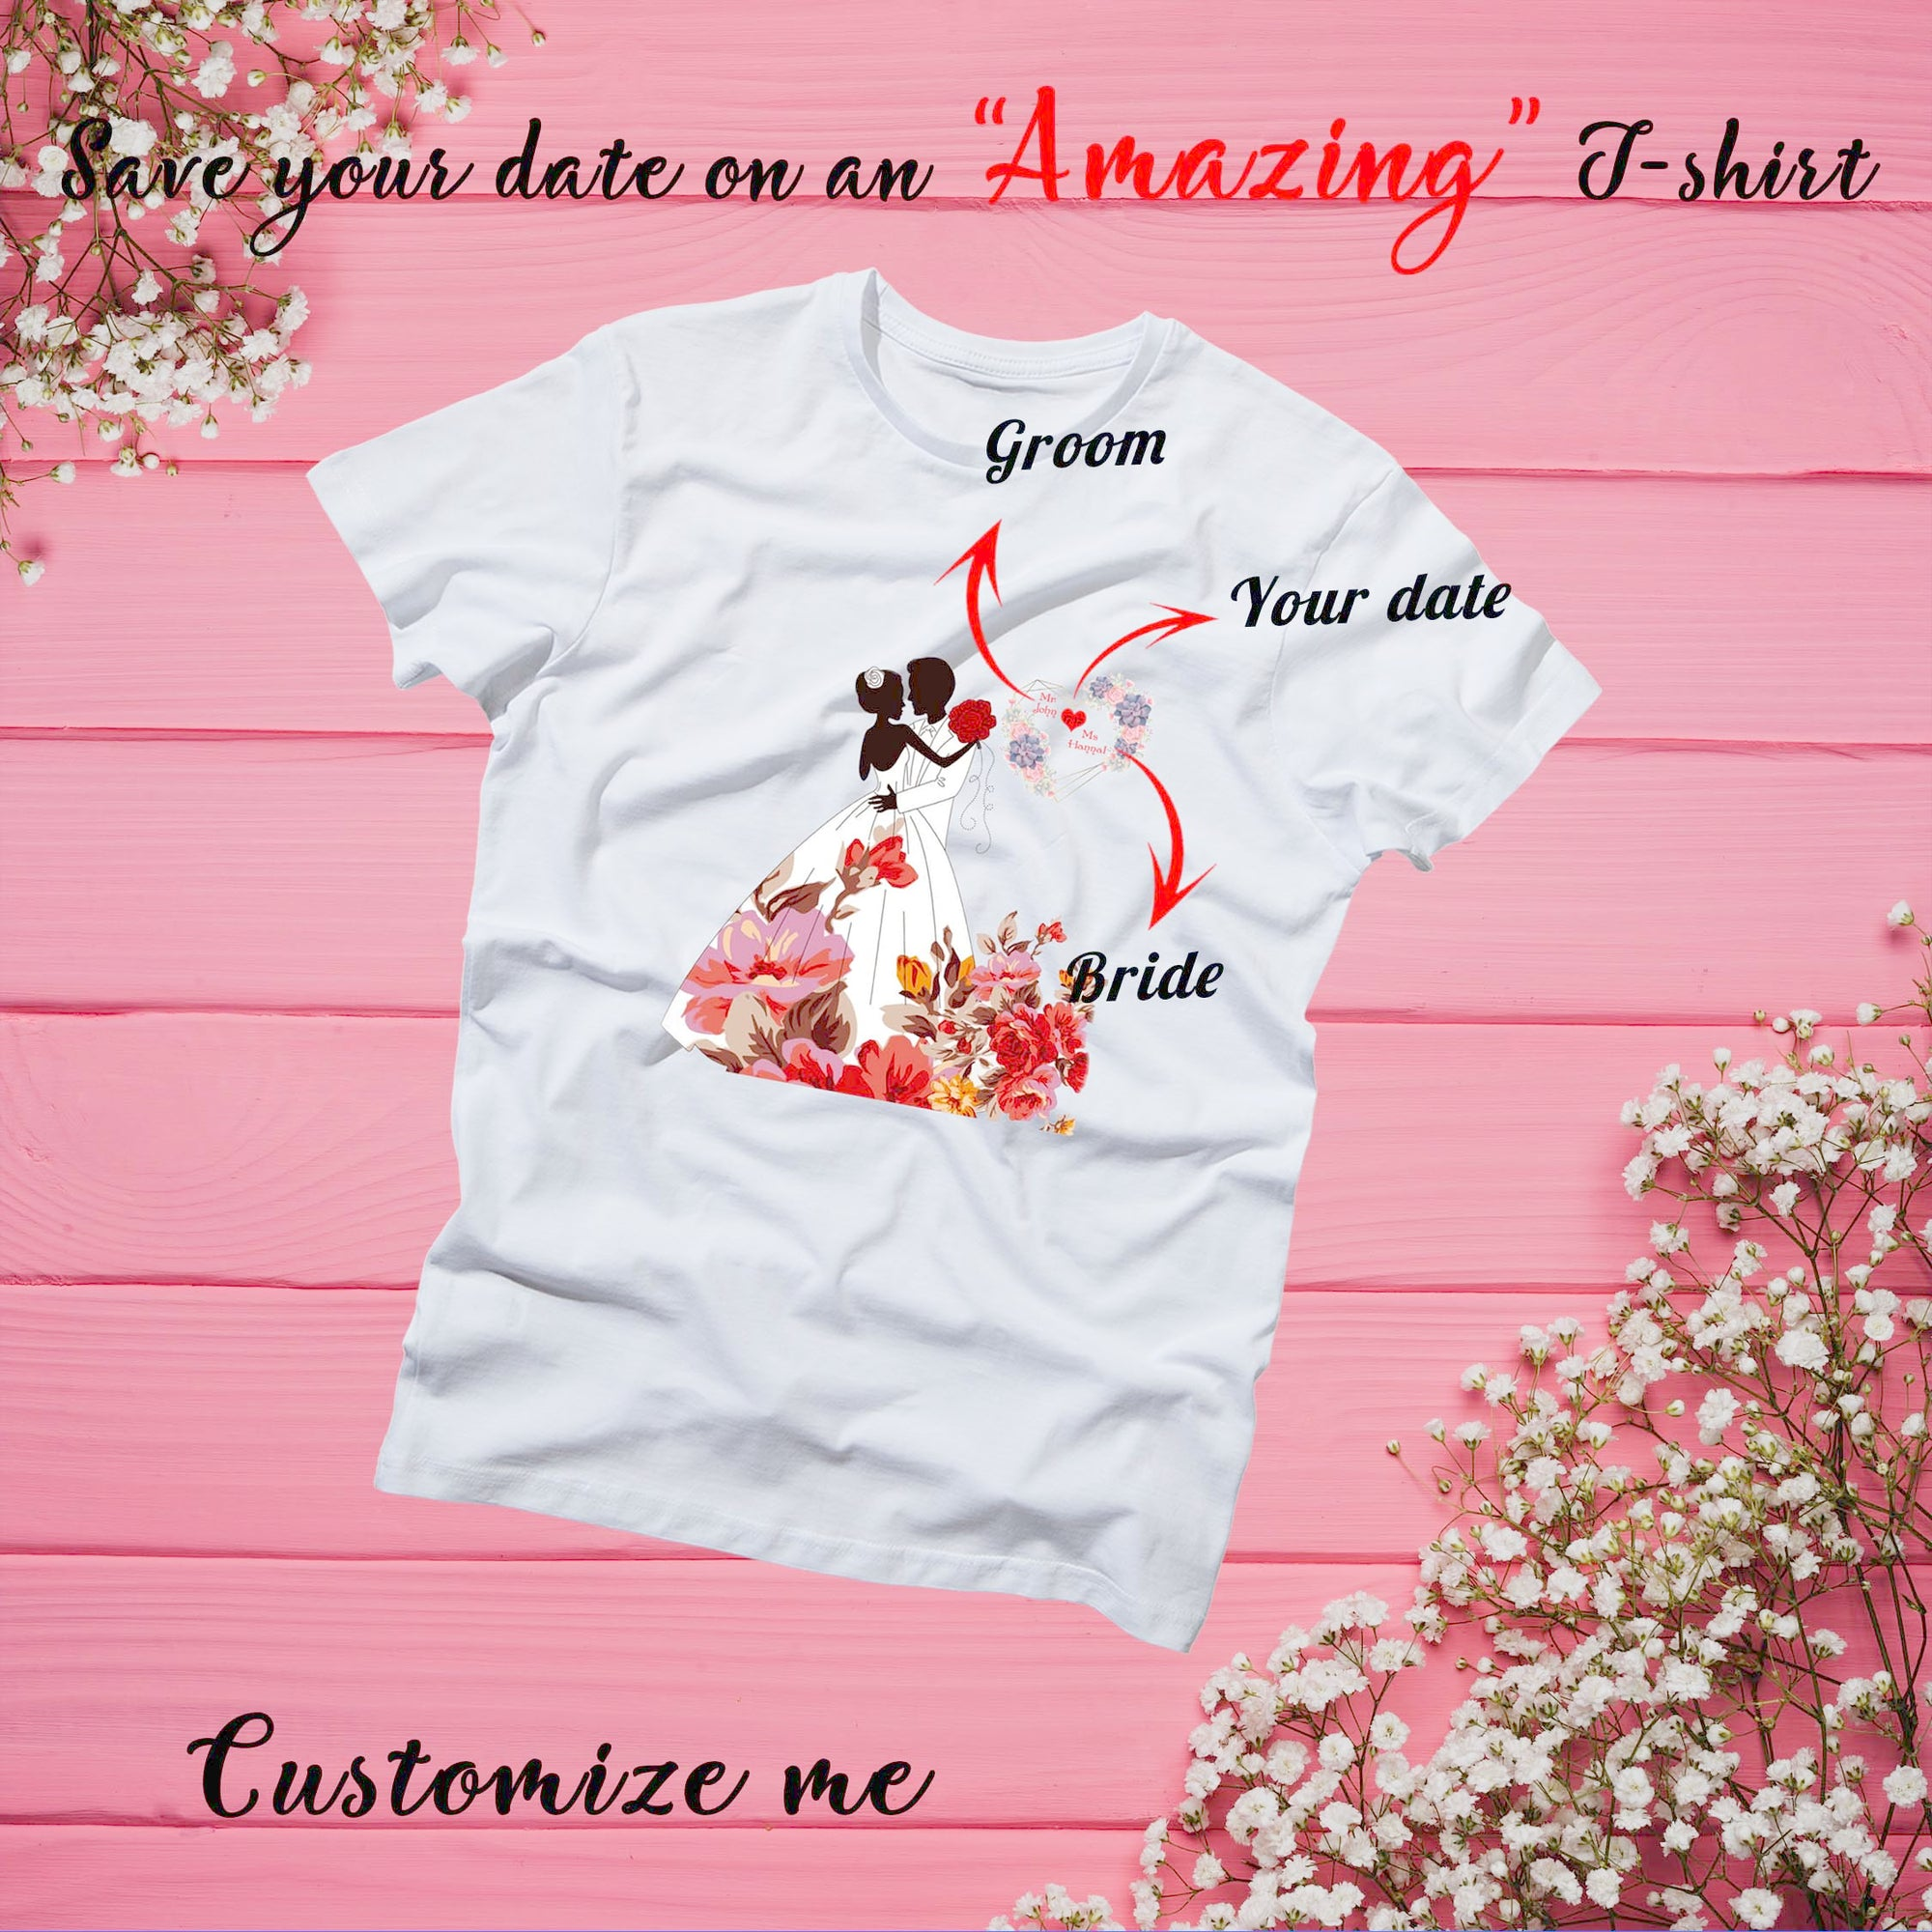 PERSONALIZED UNISEX T- SHIRT FOR COUPLE - UPLOAD YOUR COUPLE PHOTO & SAVE YOUR NAMES ON YOUR T- SHIRT